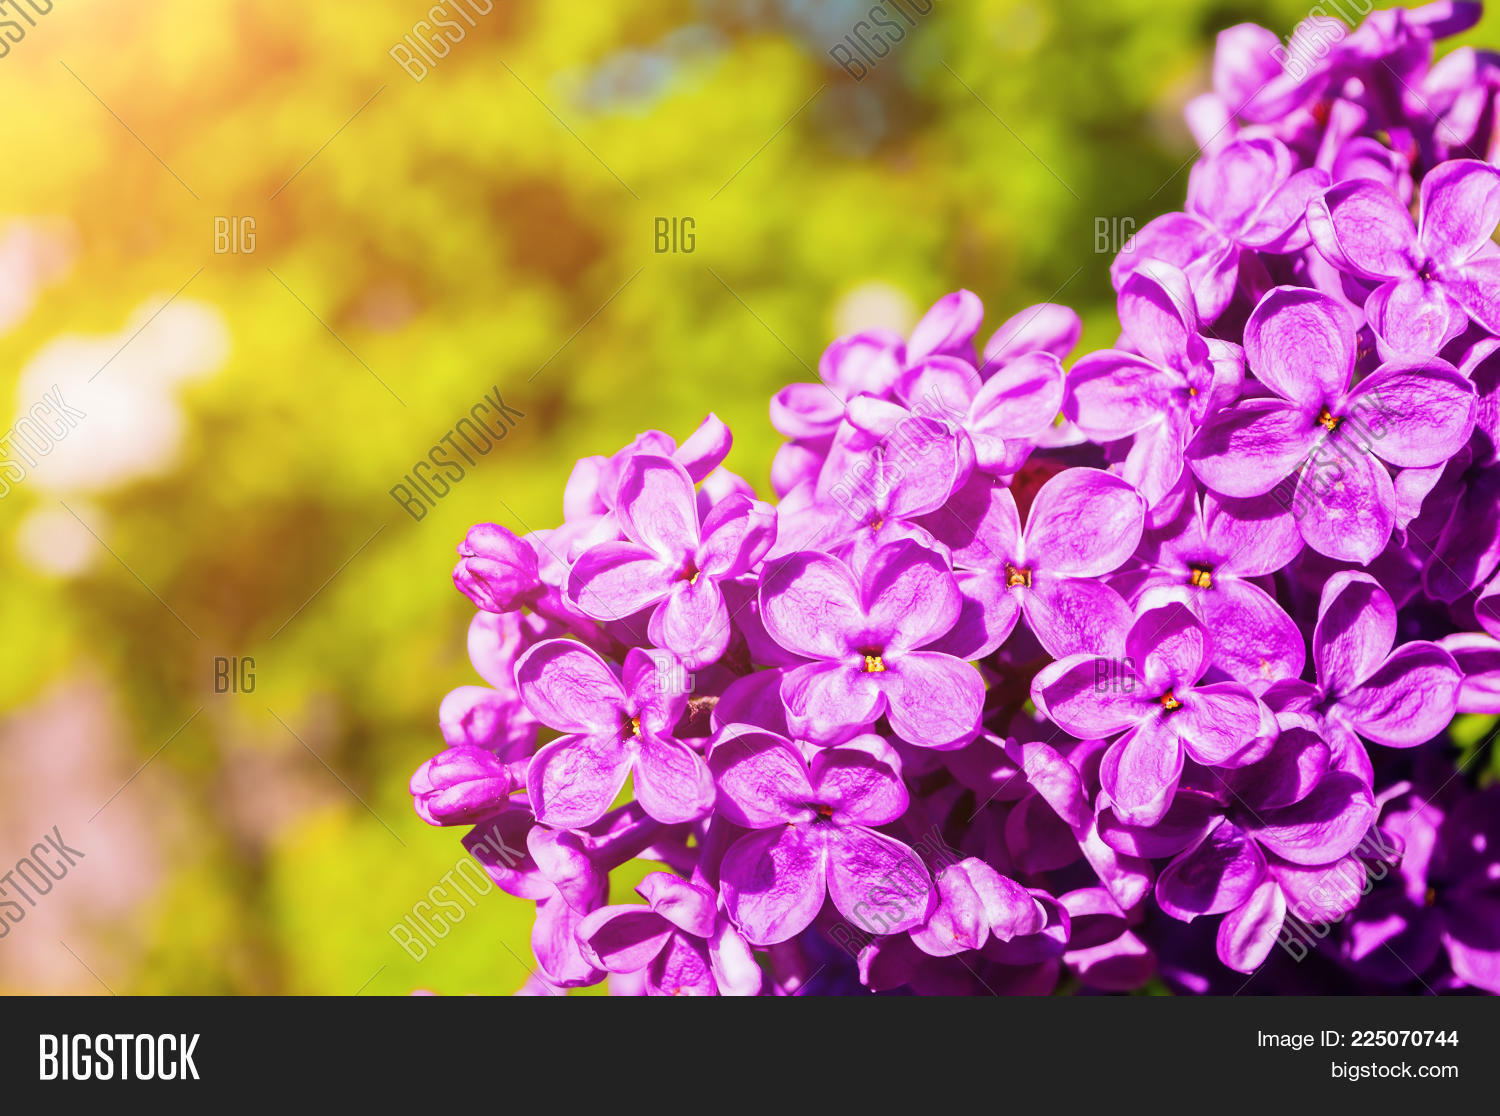 Lilac Flowers In The Spring Garden Spring Flower Background With